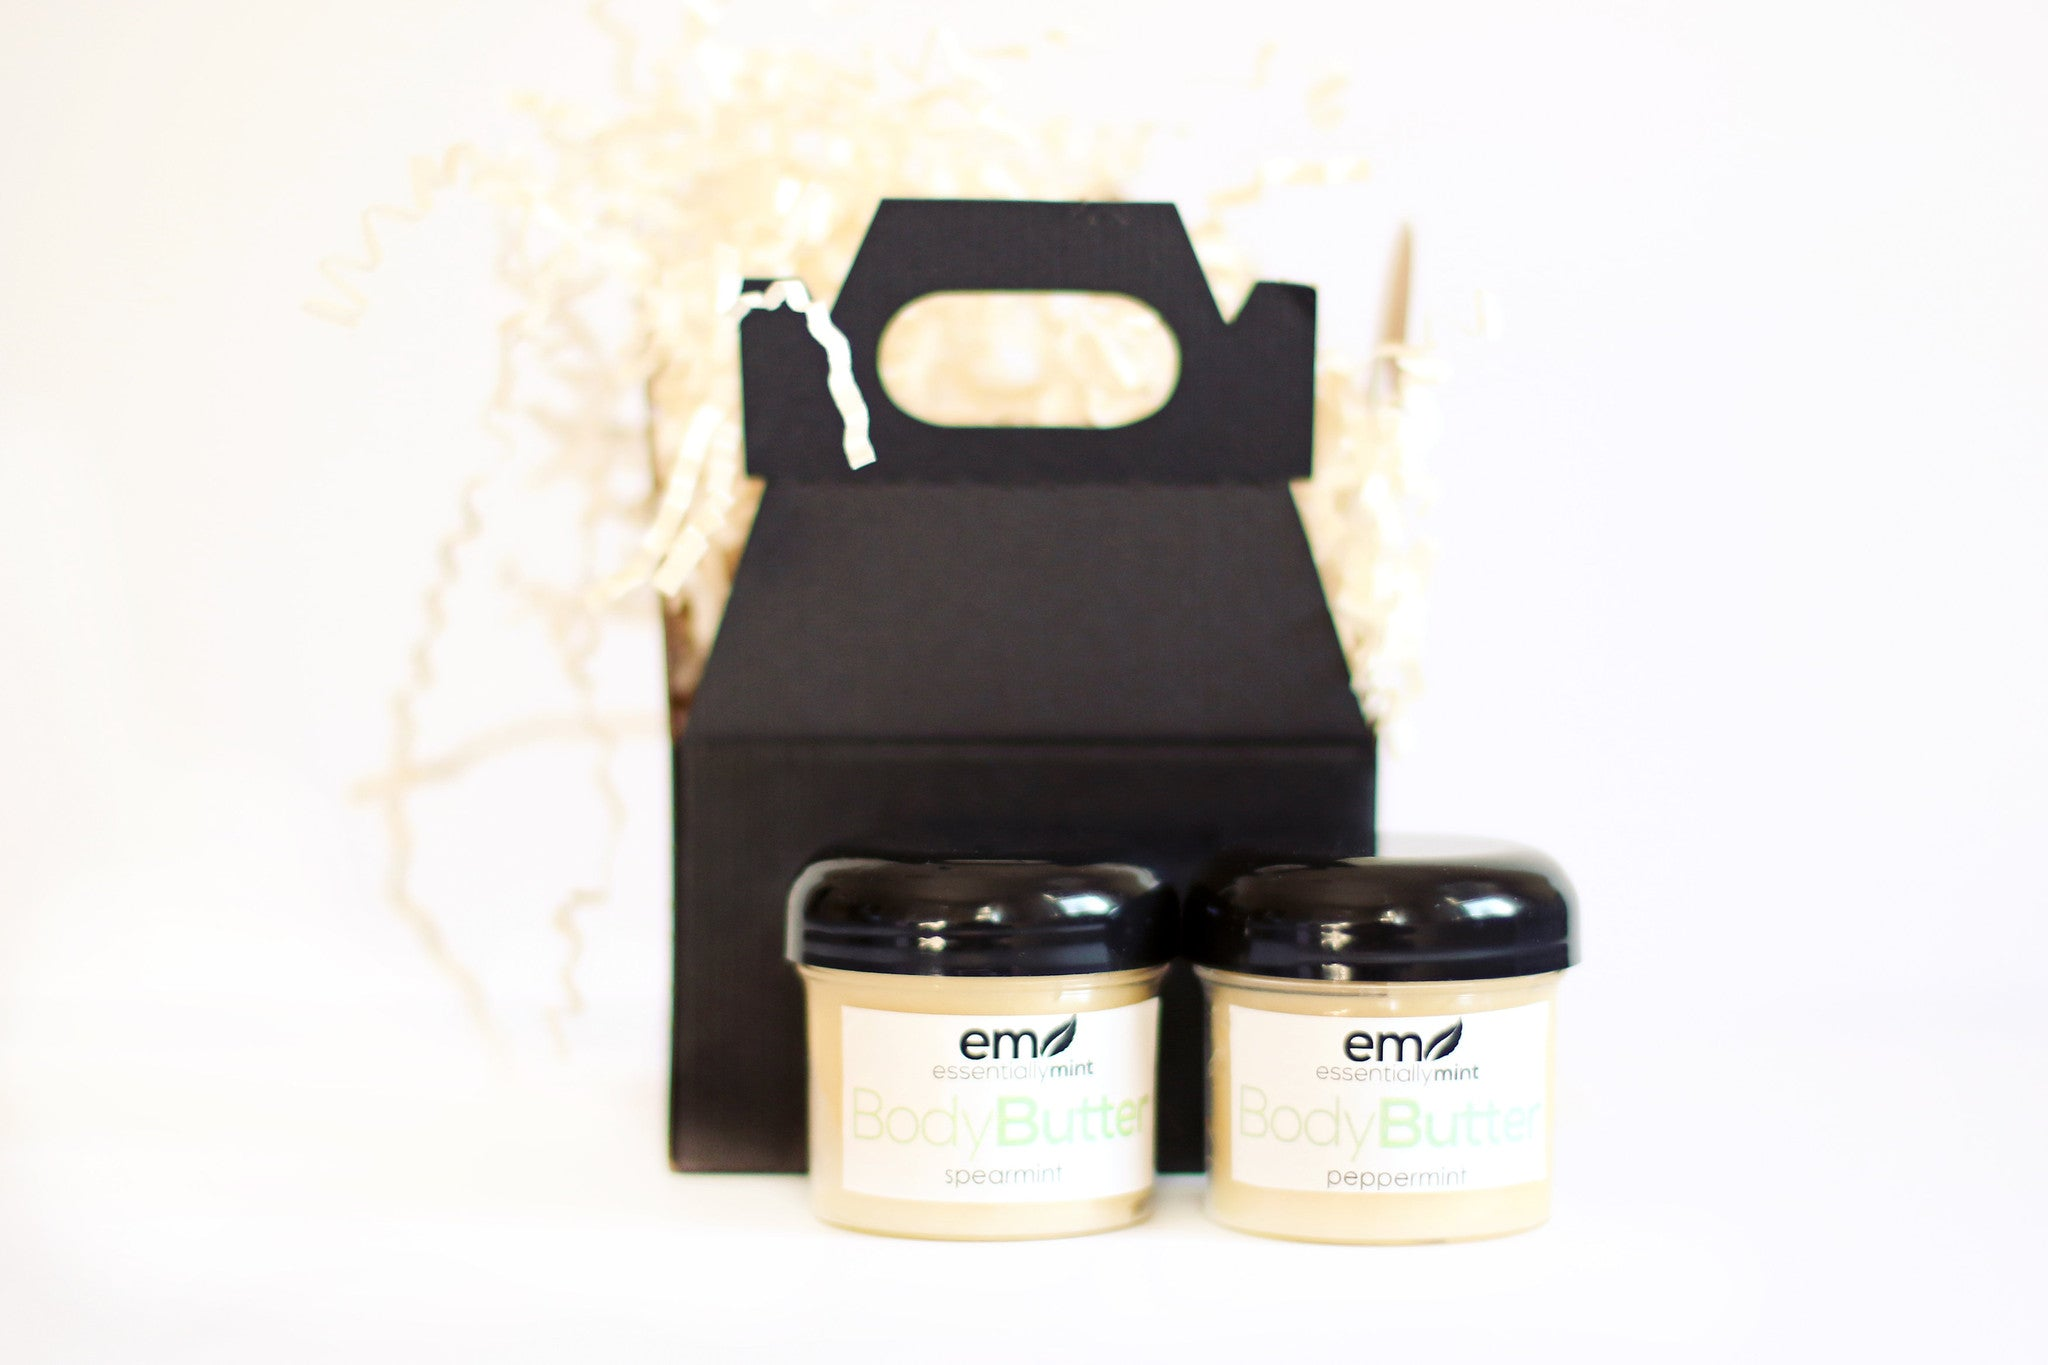 Mini Spa Gift Set With Body Butters Essentiallymint Spa Gift Boxes And Natural Skin Care